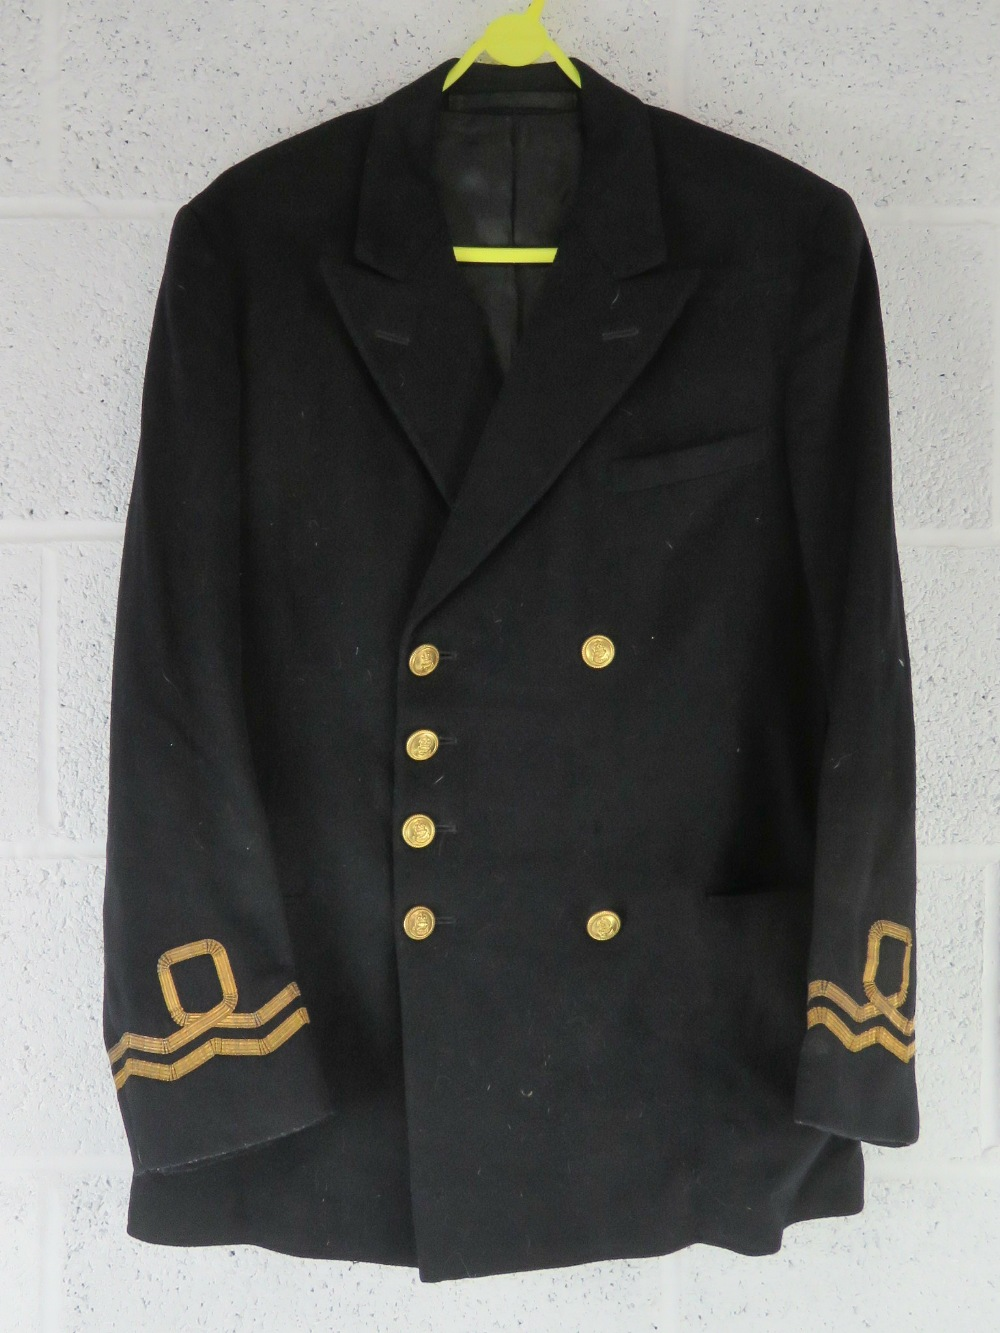 A quantity of US Navy uniform including tunic, sailors top with neck tie, shirt and trousers. - Image 5 of 7